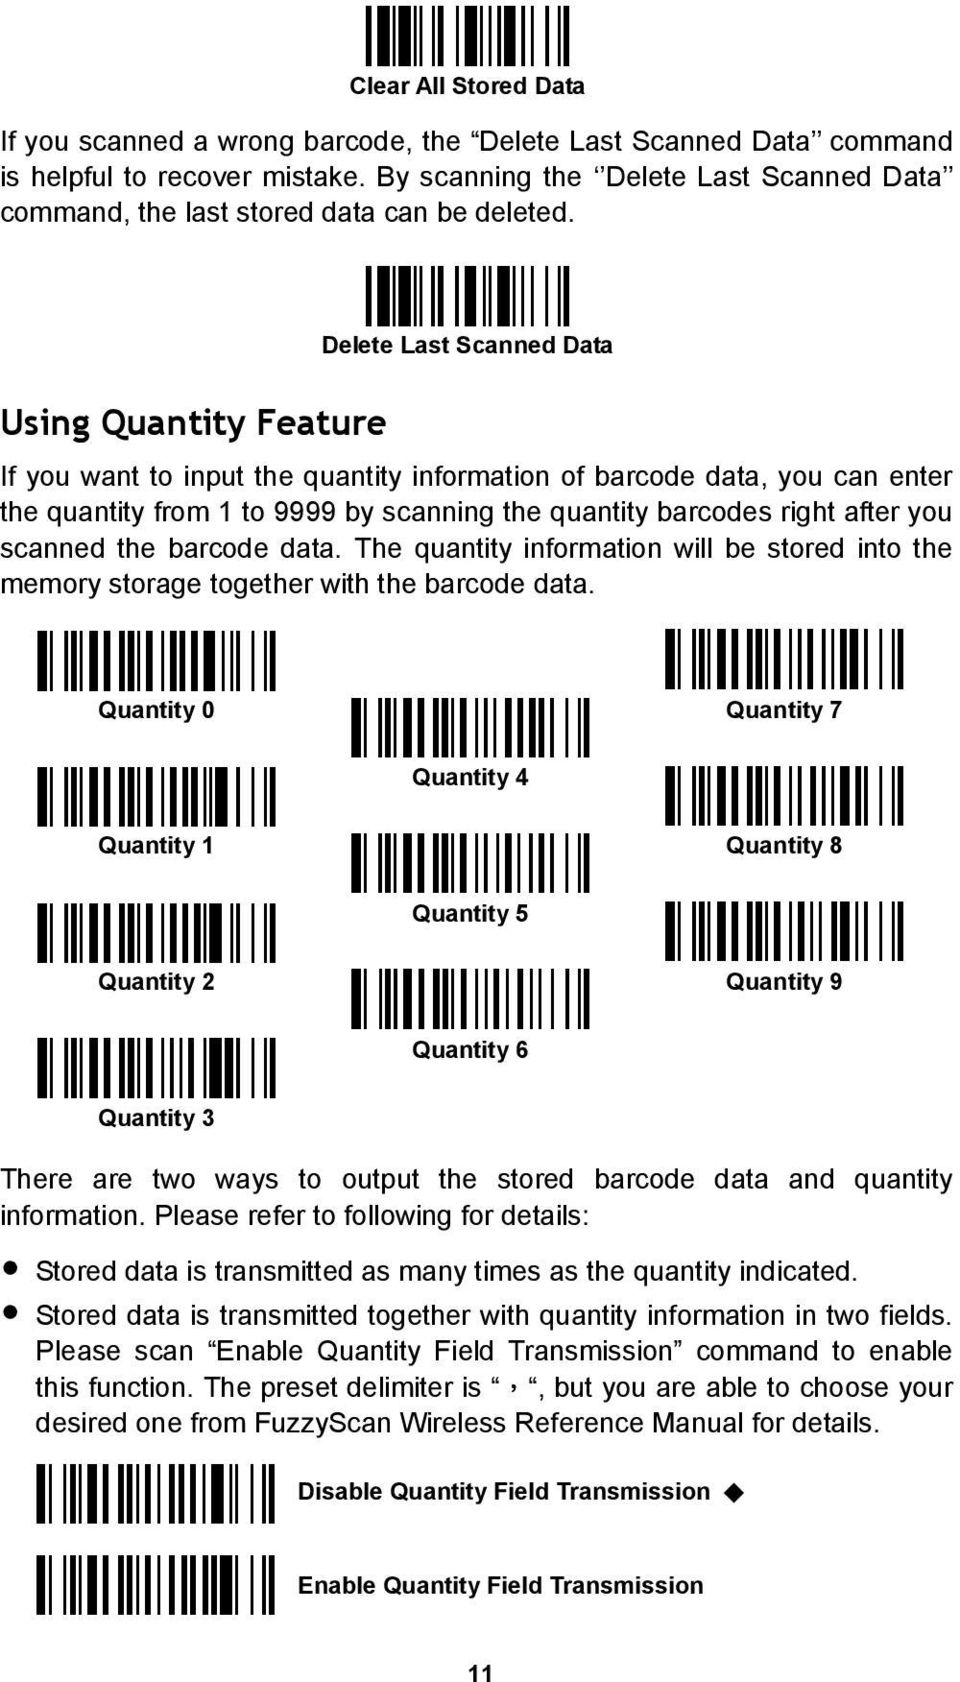 Using Quantity Feature Delete Last Scanned Data If you want to input the quantity information of barcode data, you can enter the quantity from 1 to 9999 by scanning the quantity barcodes right after